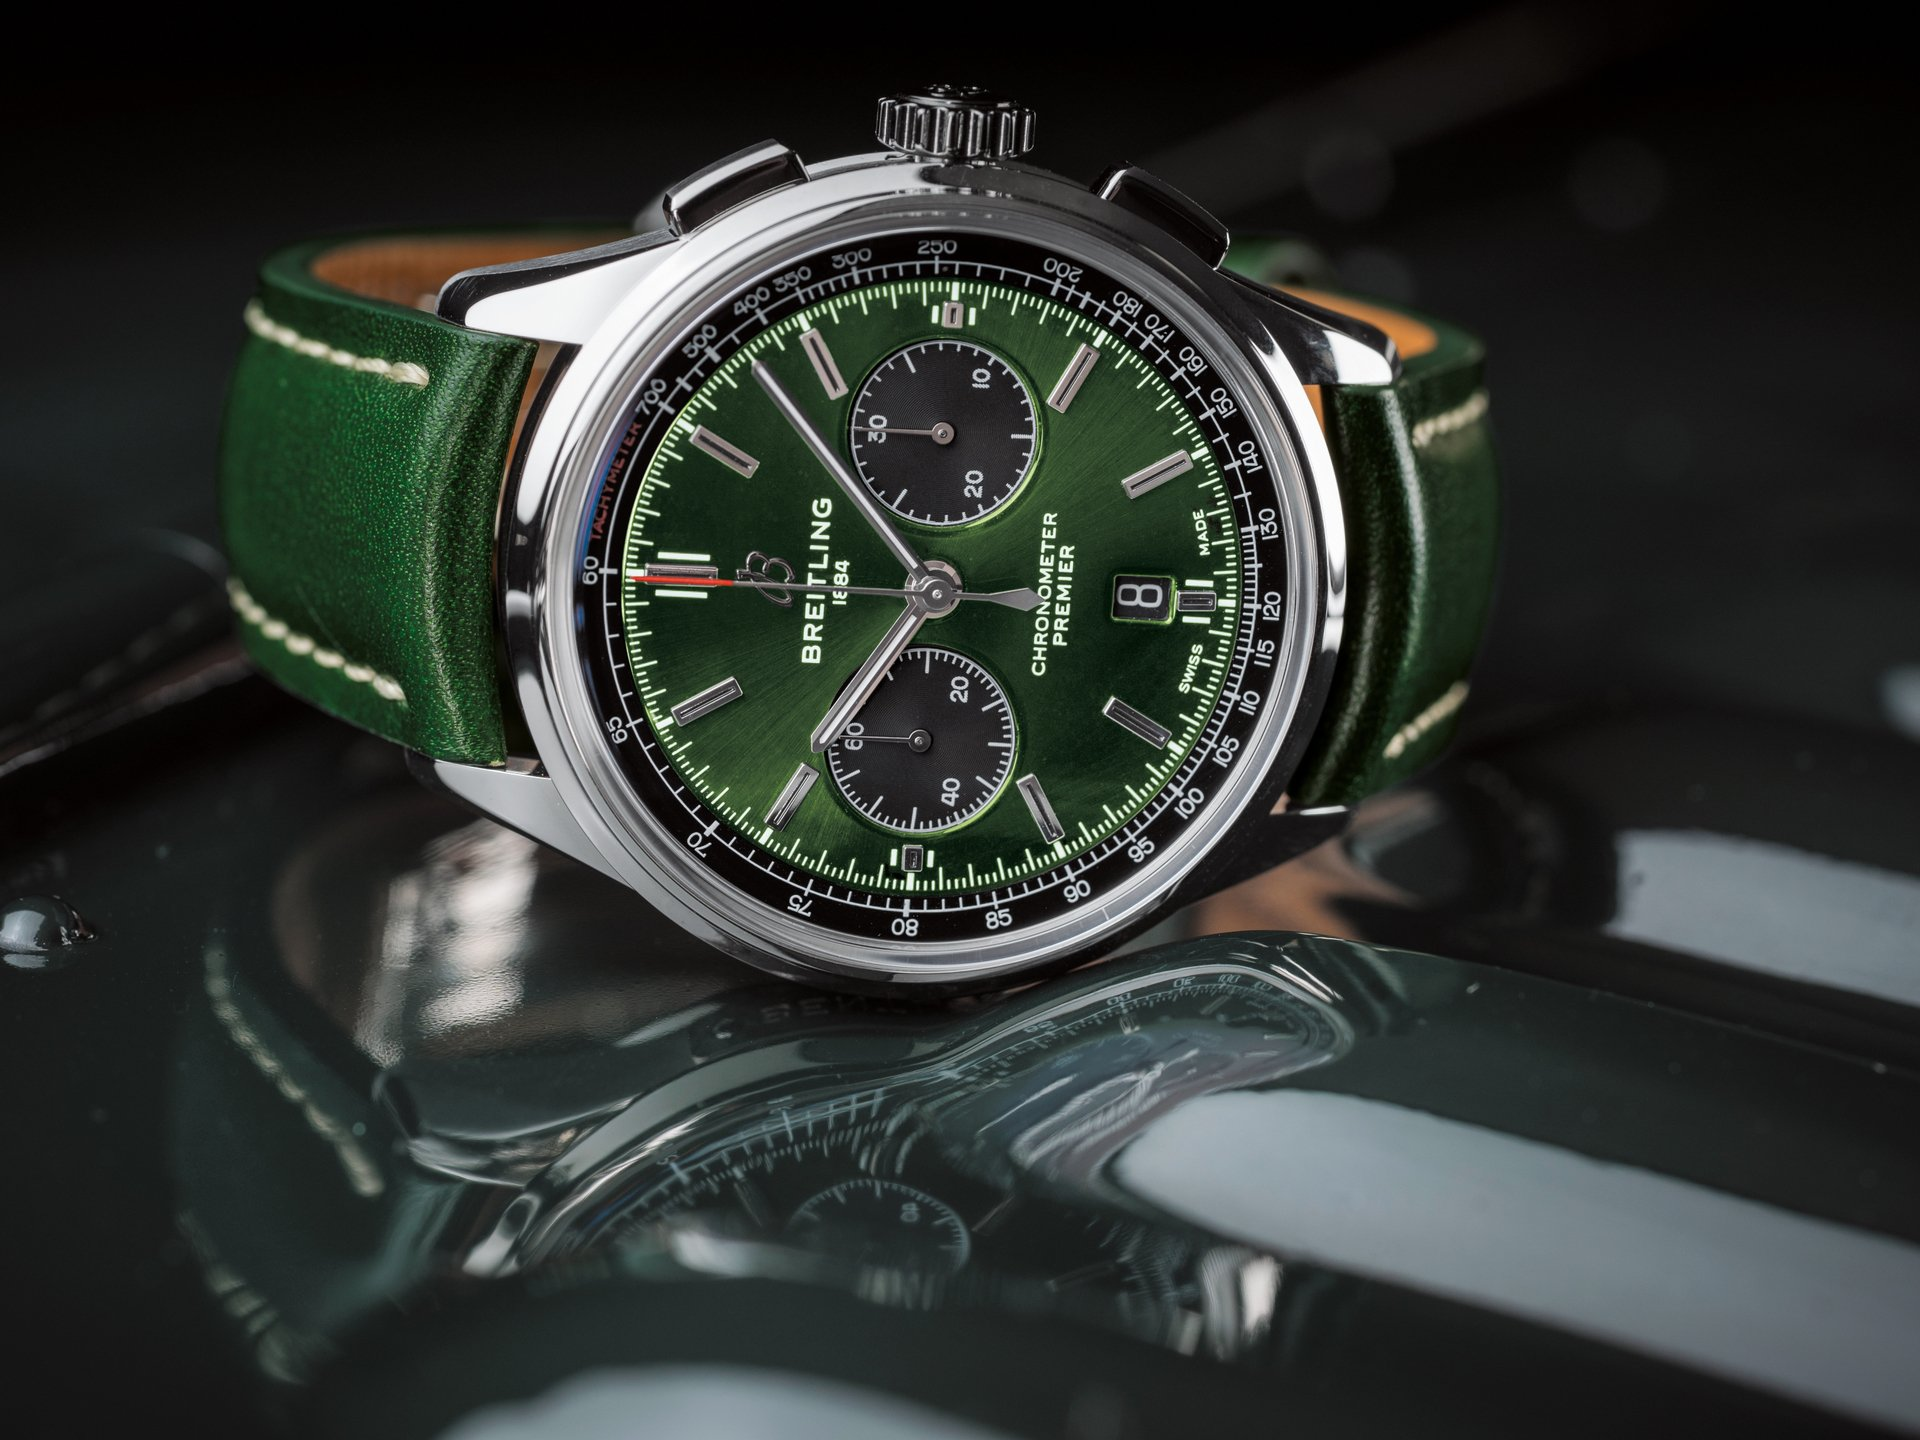 Latest news on Breitling Swiss watches - New models